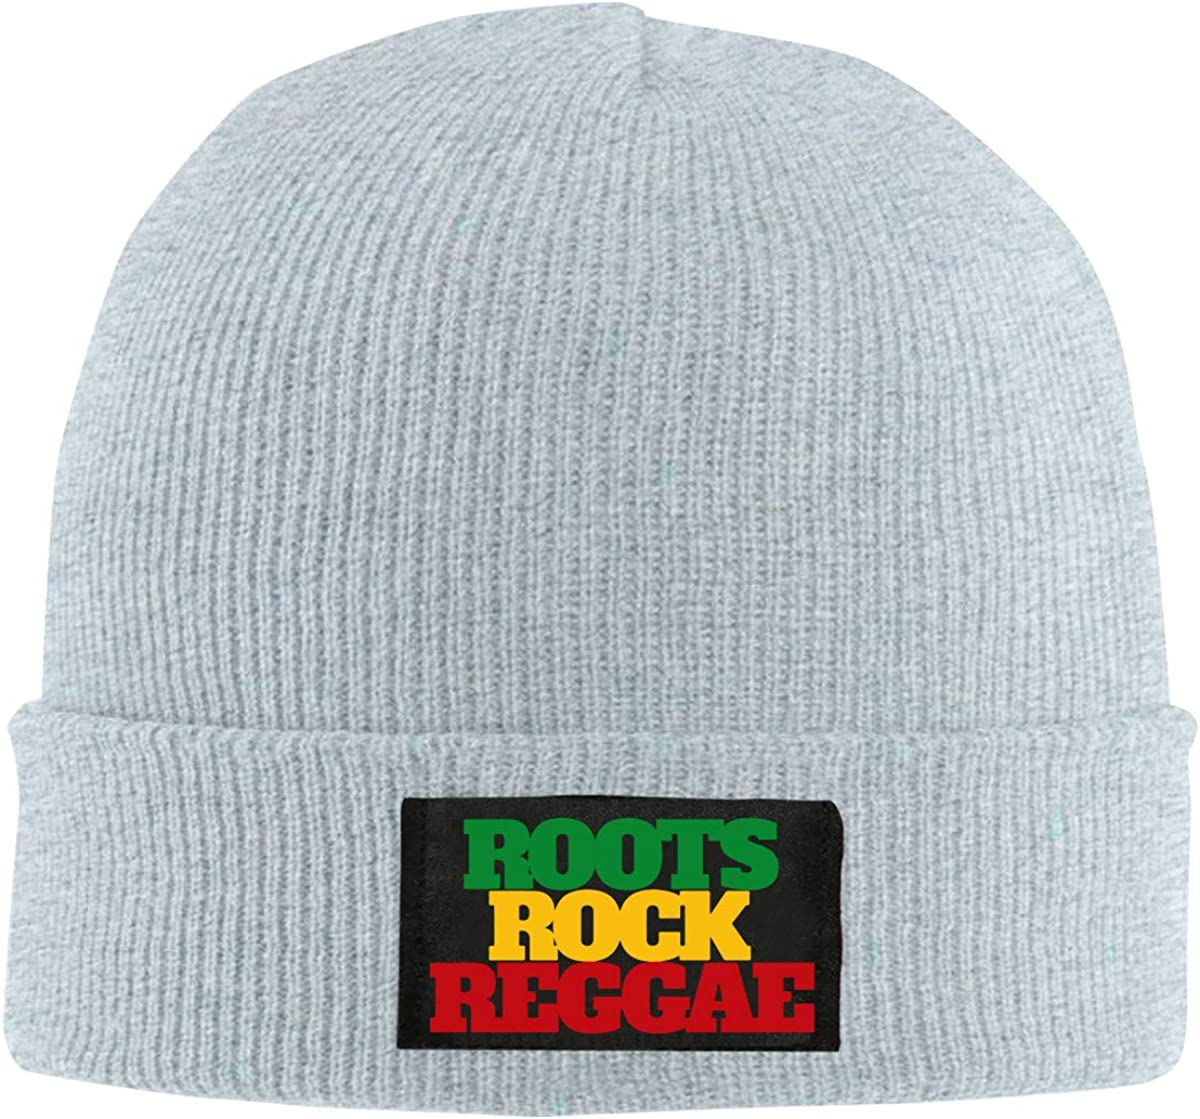 Roots Rock Reggae Rasta Women and Men Knitted Hat Comfortable Pure Color Hat